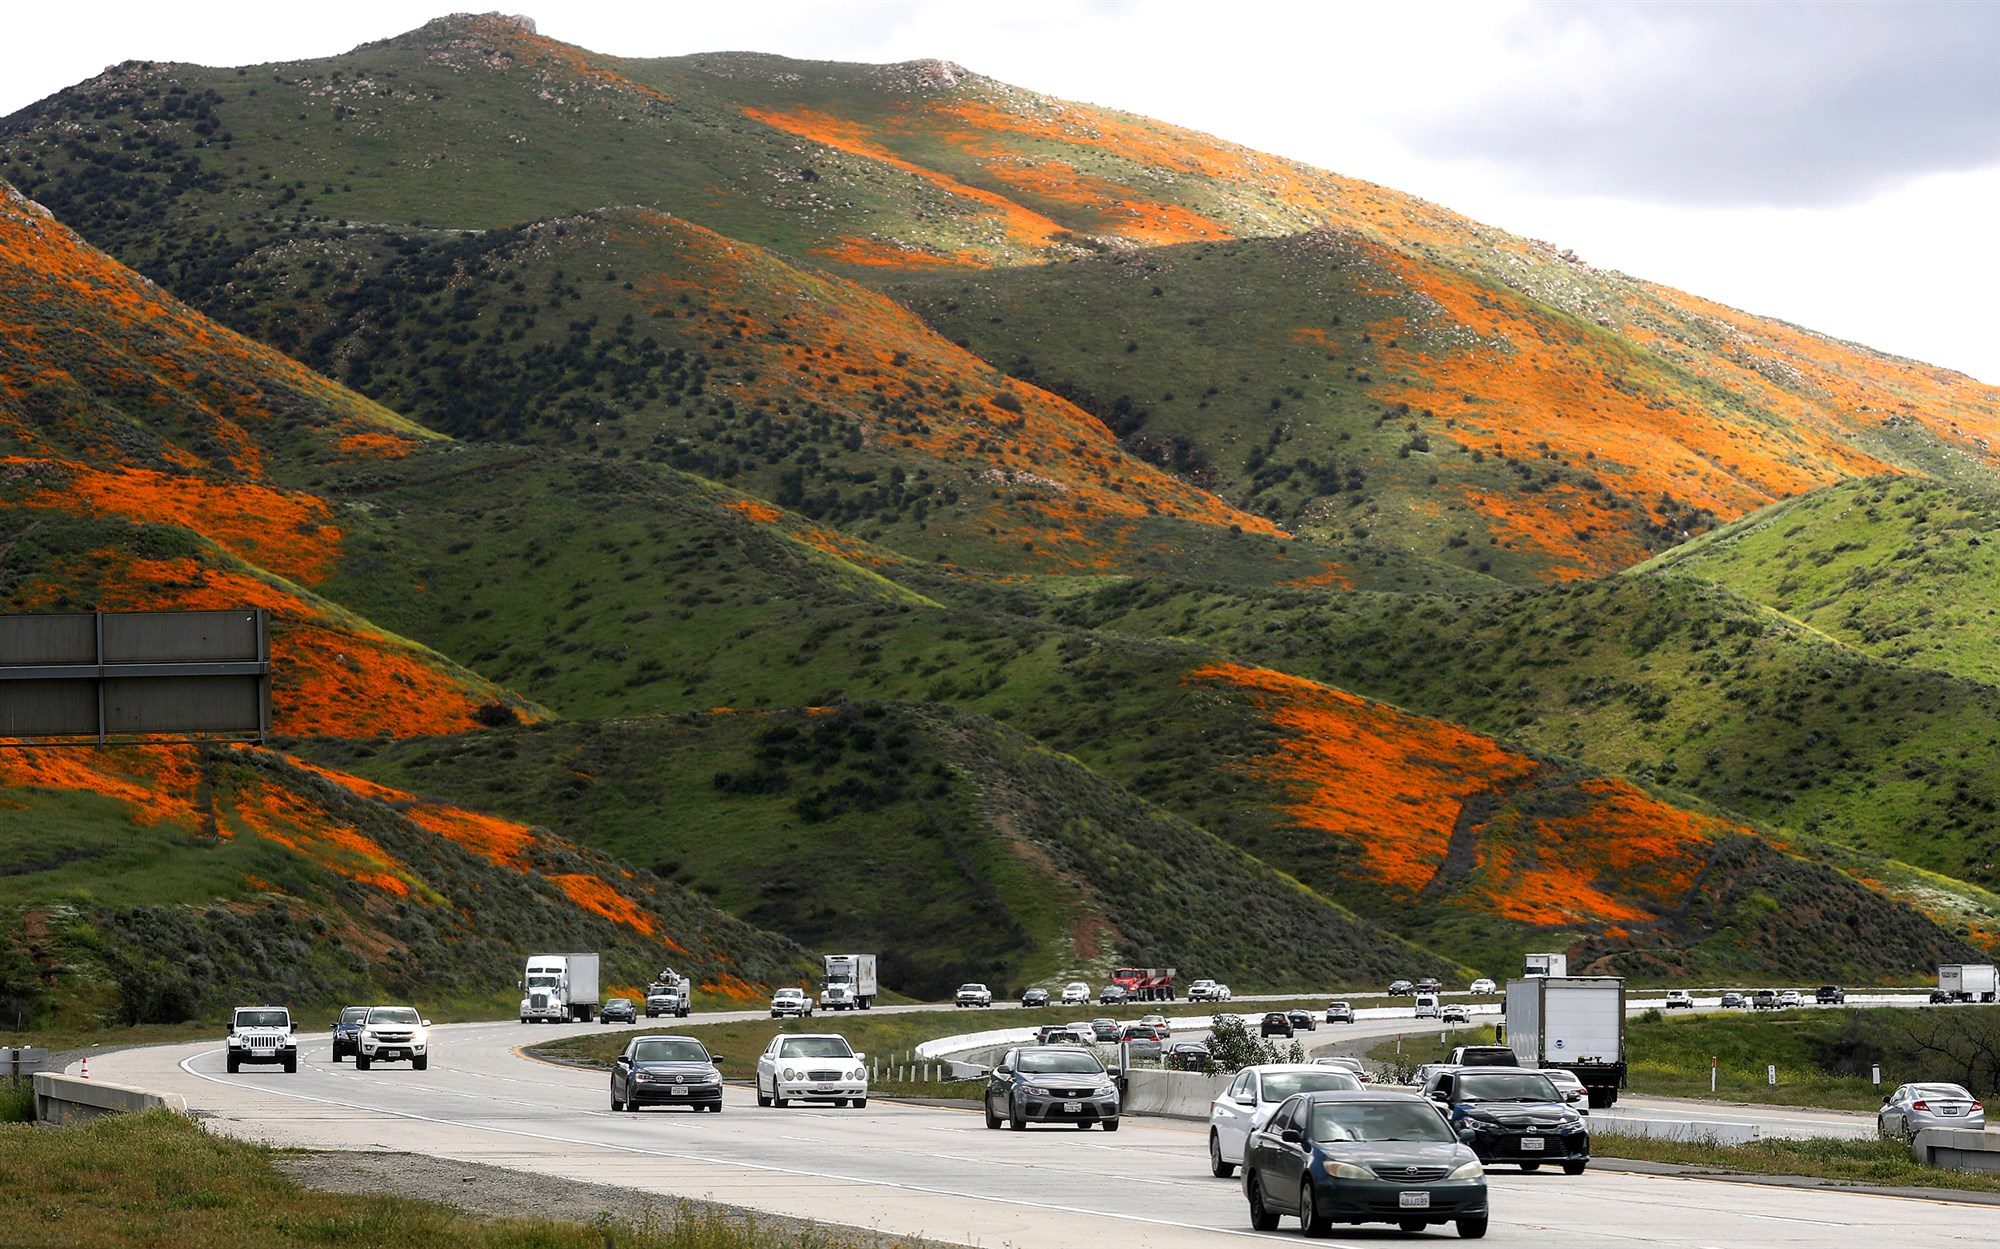 Heavier than normal winter rains have produced super blooms of wildflowers in California. Courtesy Mario Tama / Getty Images